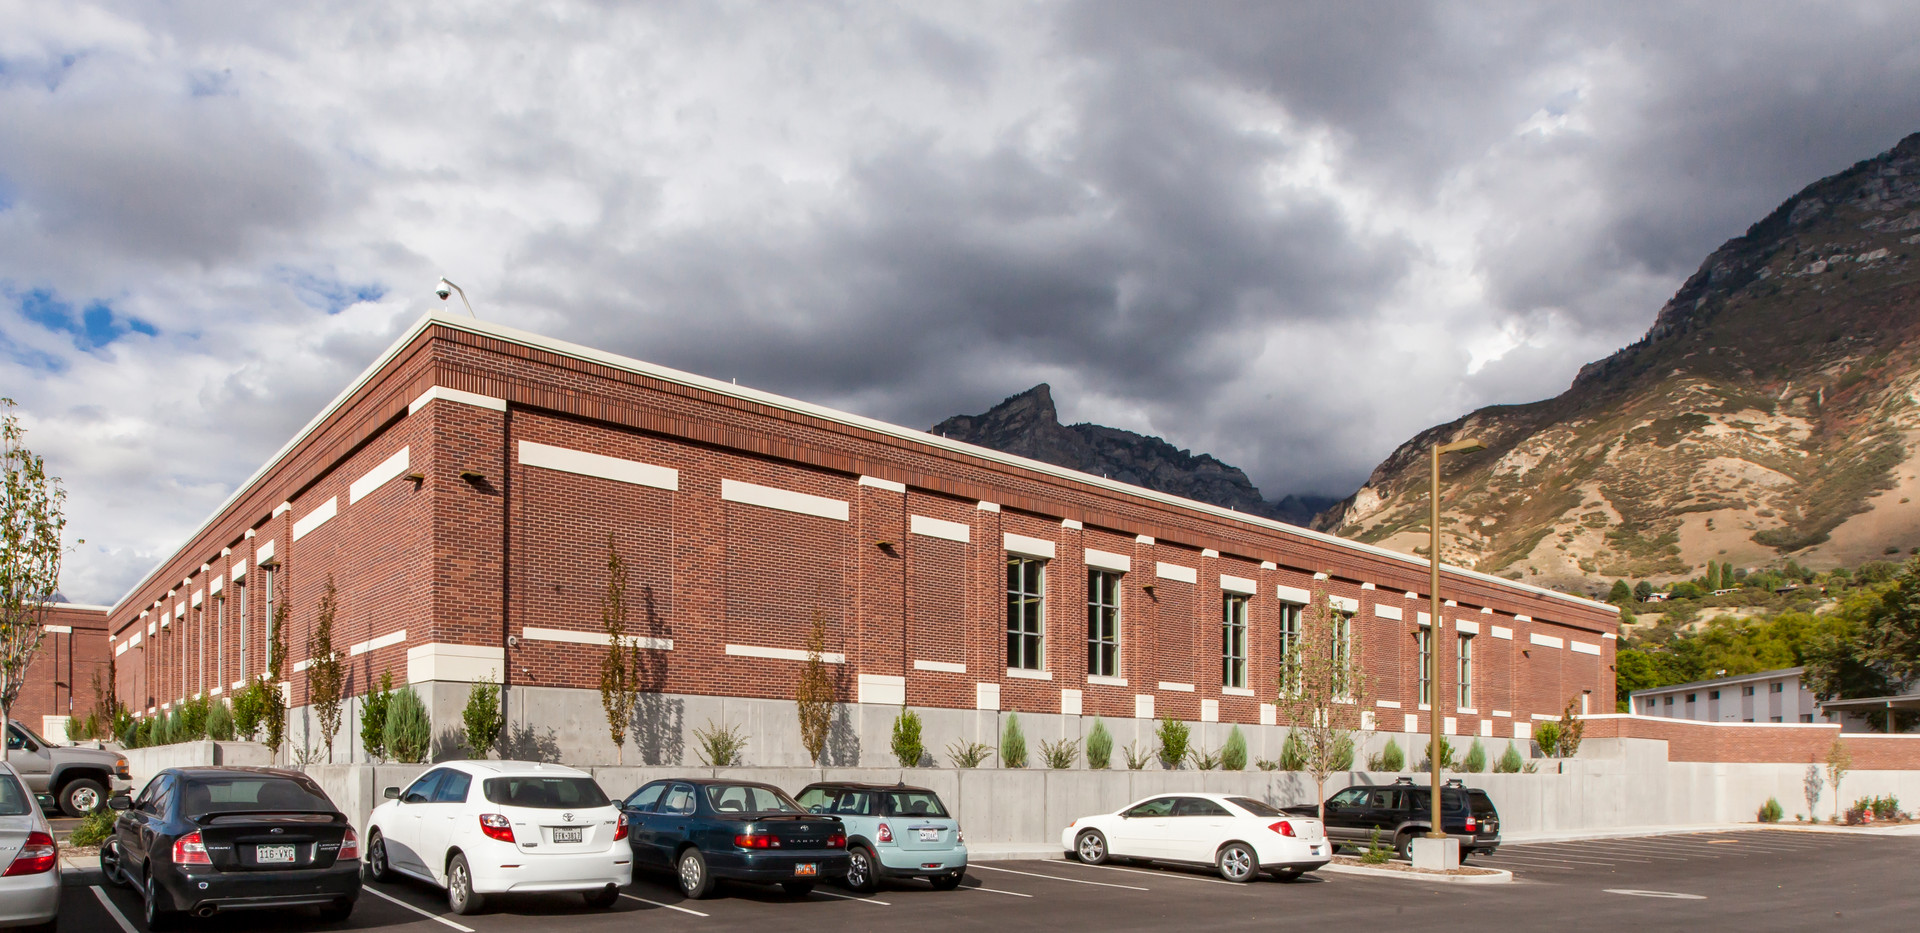 BYU Laundry, Maintenance, and Emergency Facility